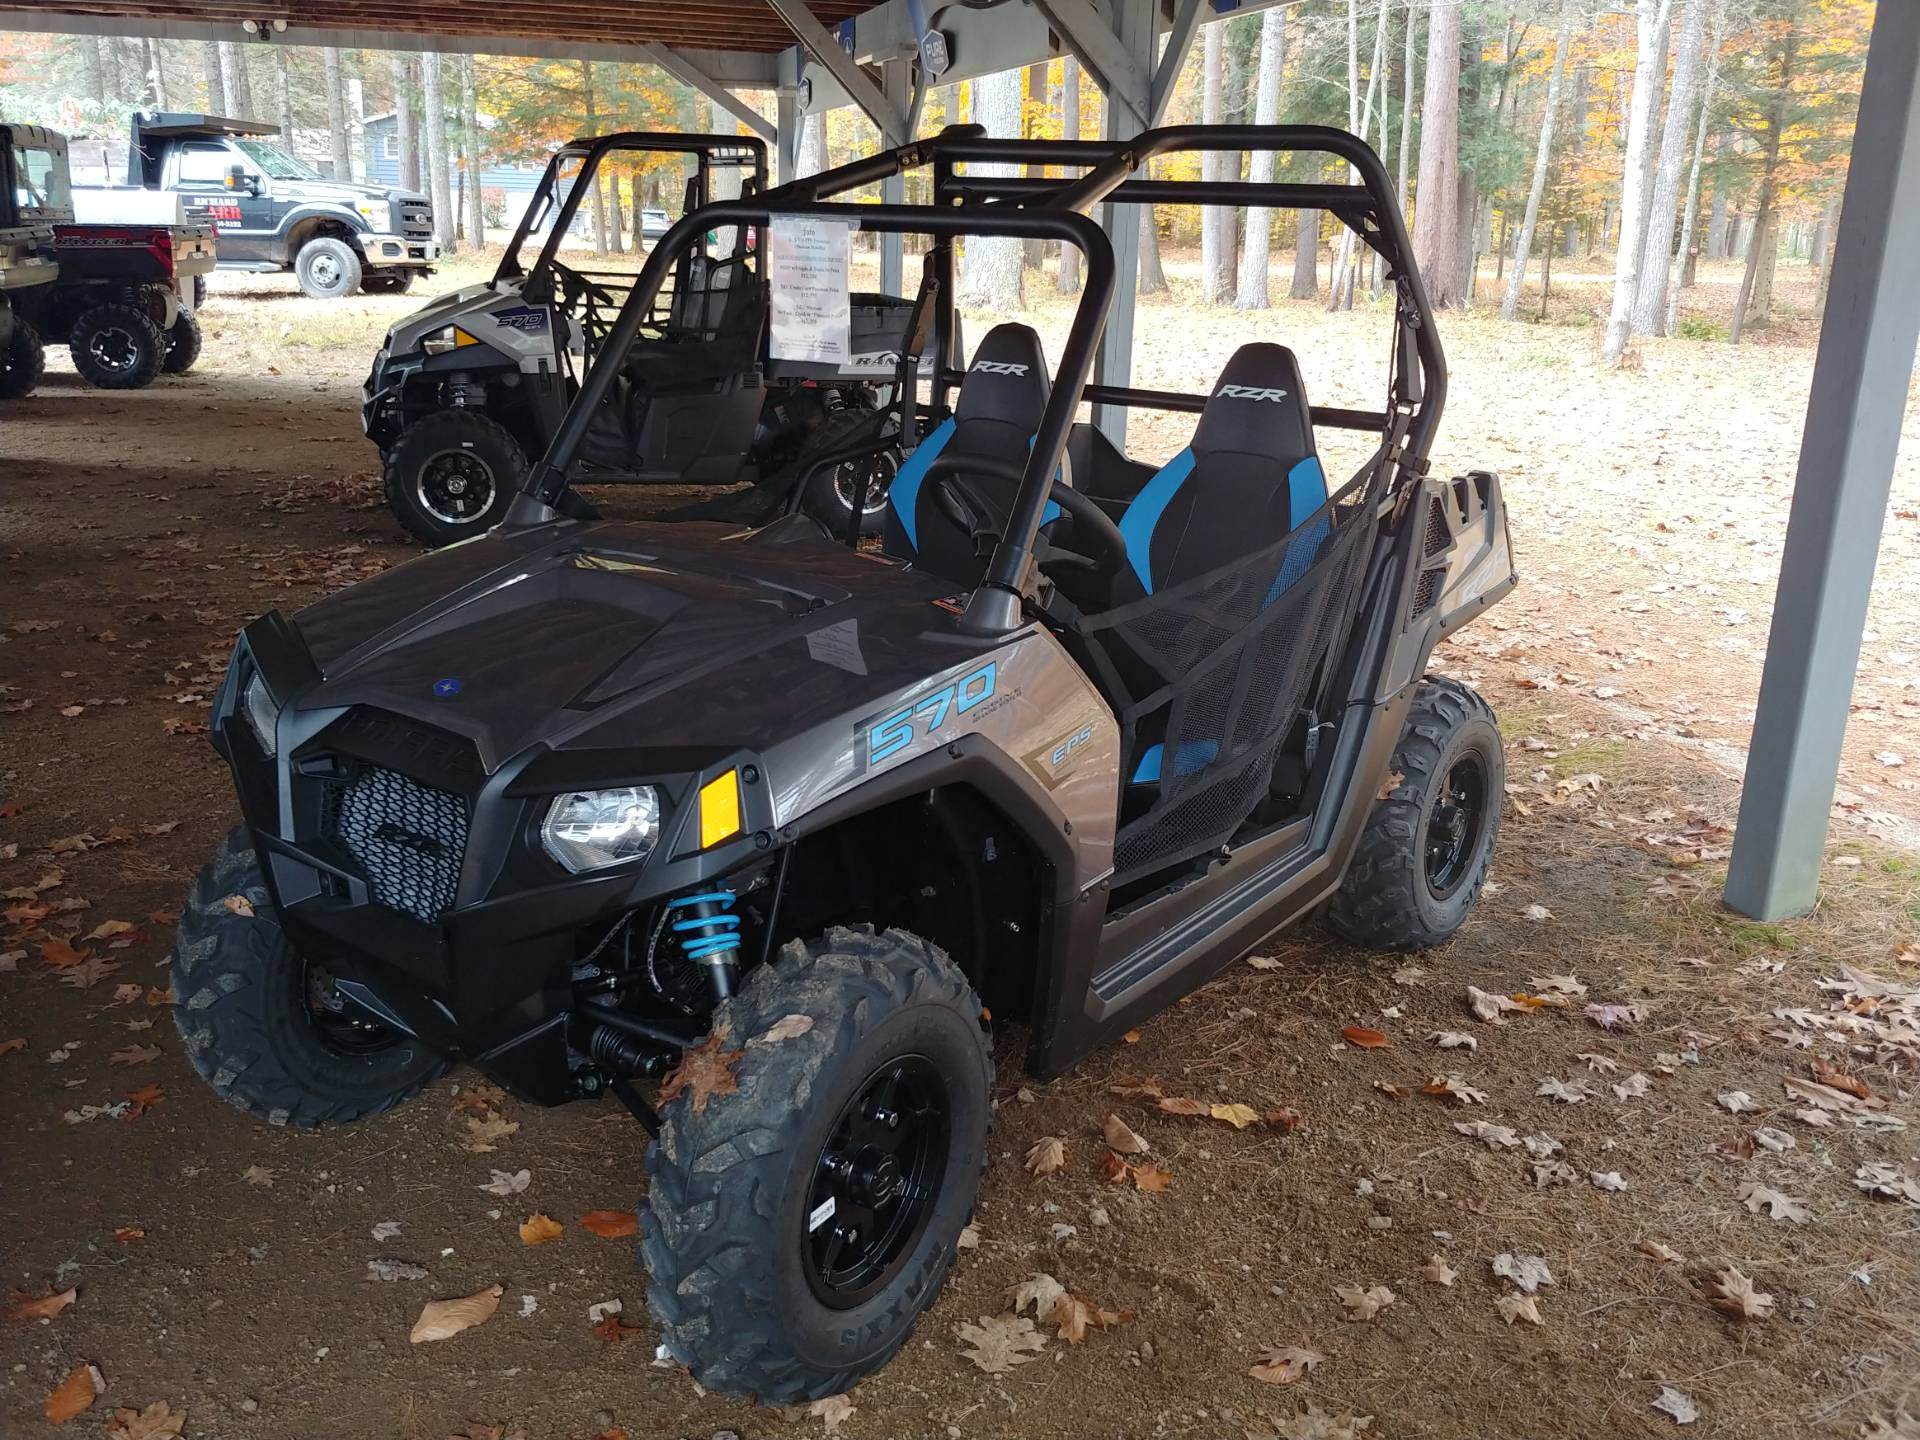 2020 Polaris RZR 570 Premium in Center Conway, New Hampshire